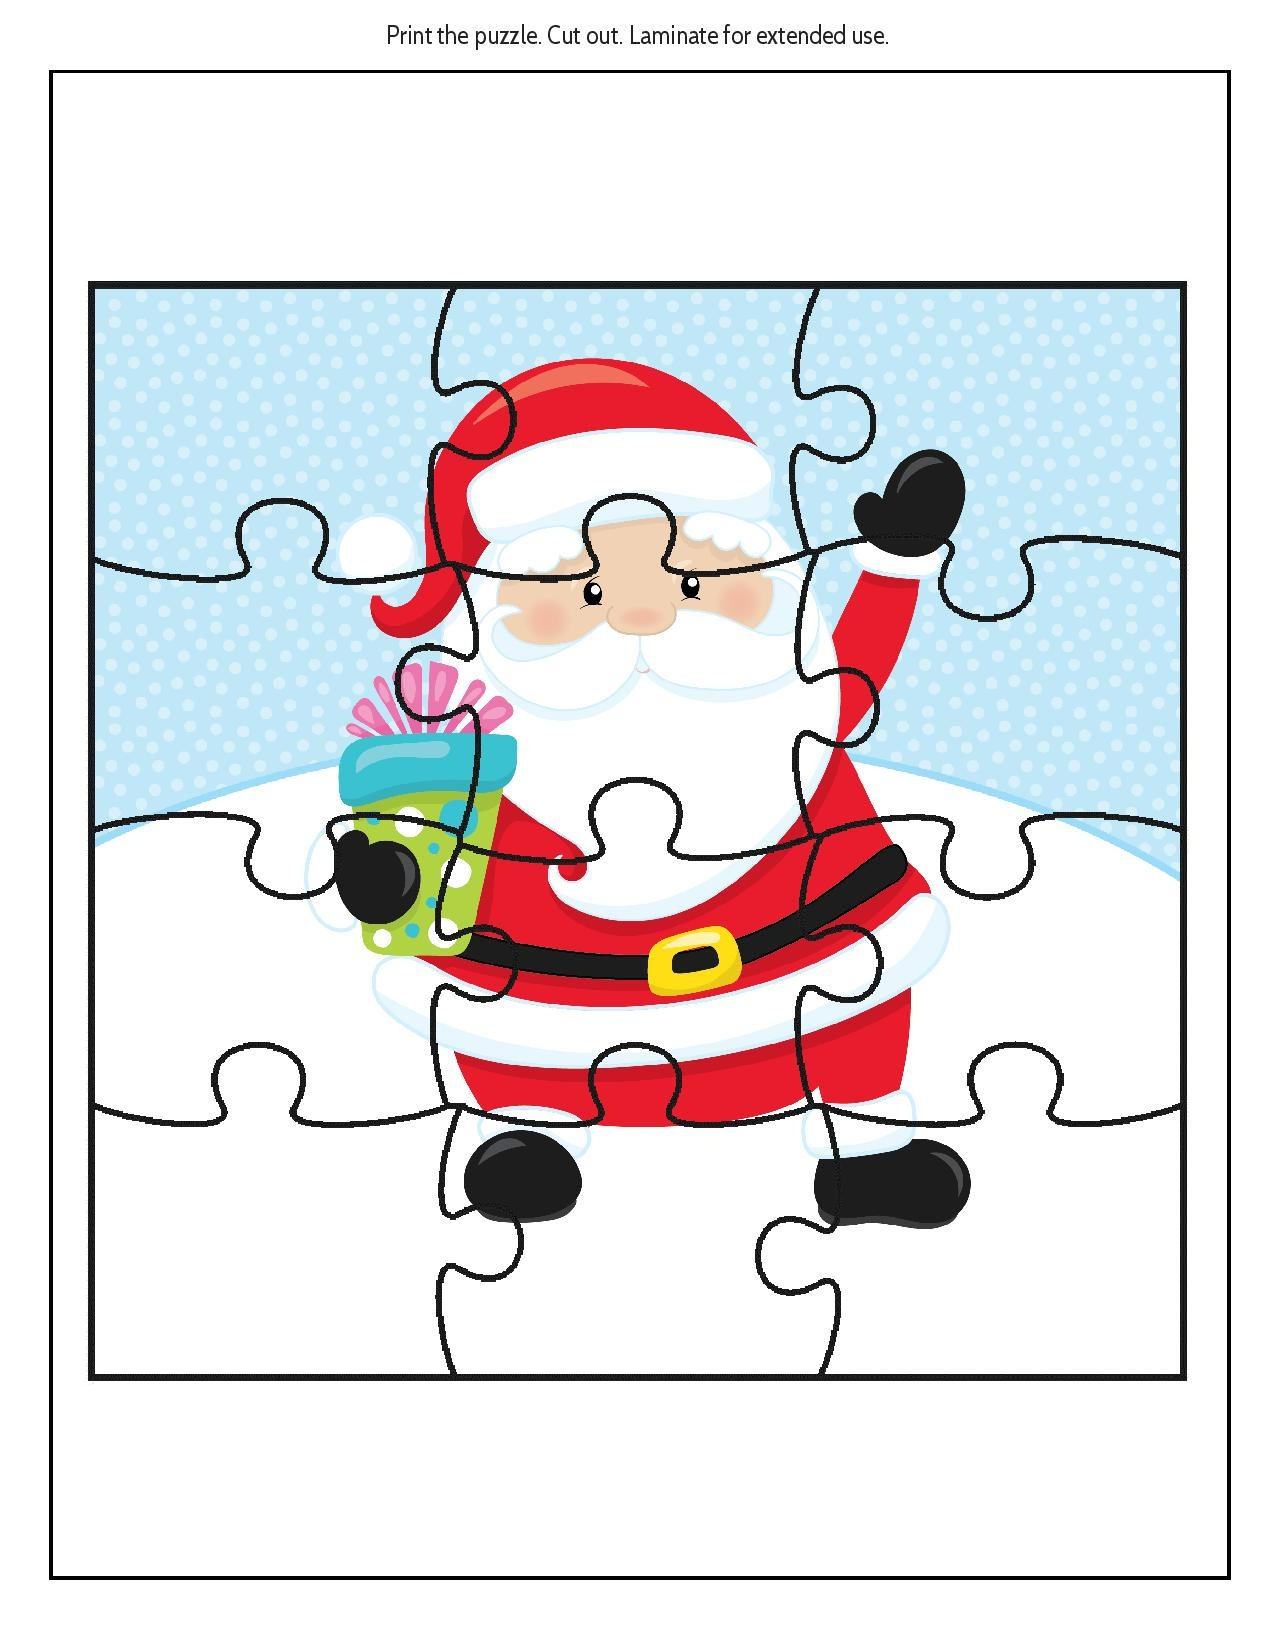 Free Educational Printable Christmas Puzzle Pack - Real And Quirky - Free Printable Christmas Picture Puzzles